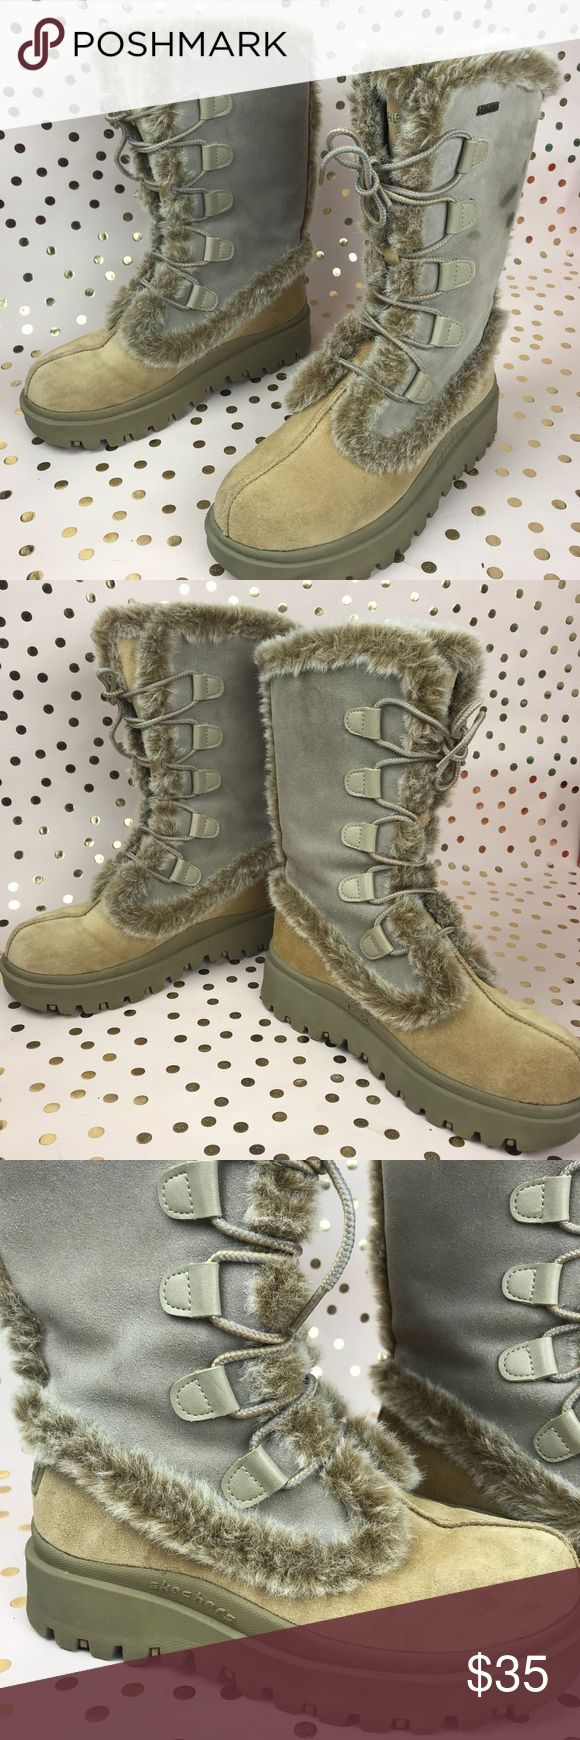 SKETCHERS outdoor womens winter lace up boots 6.5 Sketchers outdoors winter boots. Lace up. Size 6.5 Nice and warm for winter. Suede and faux fur trim. Has some marks on the side. In good condition. Skechers Shoes Winter & Rain Boots